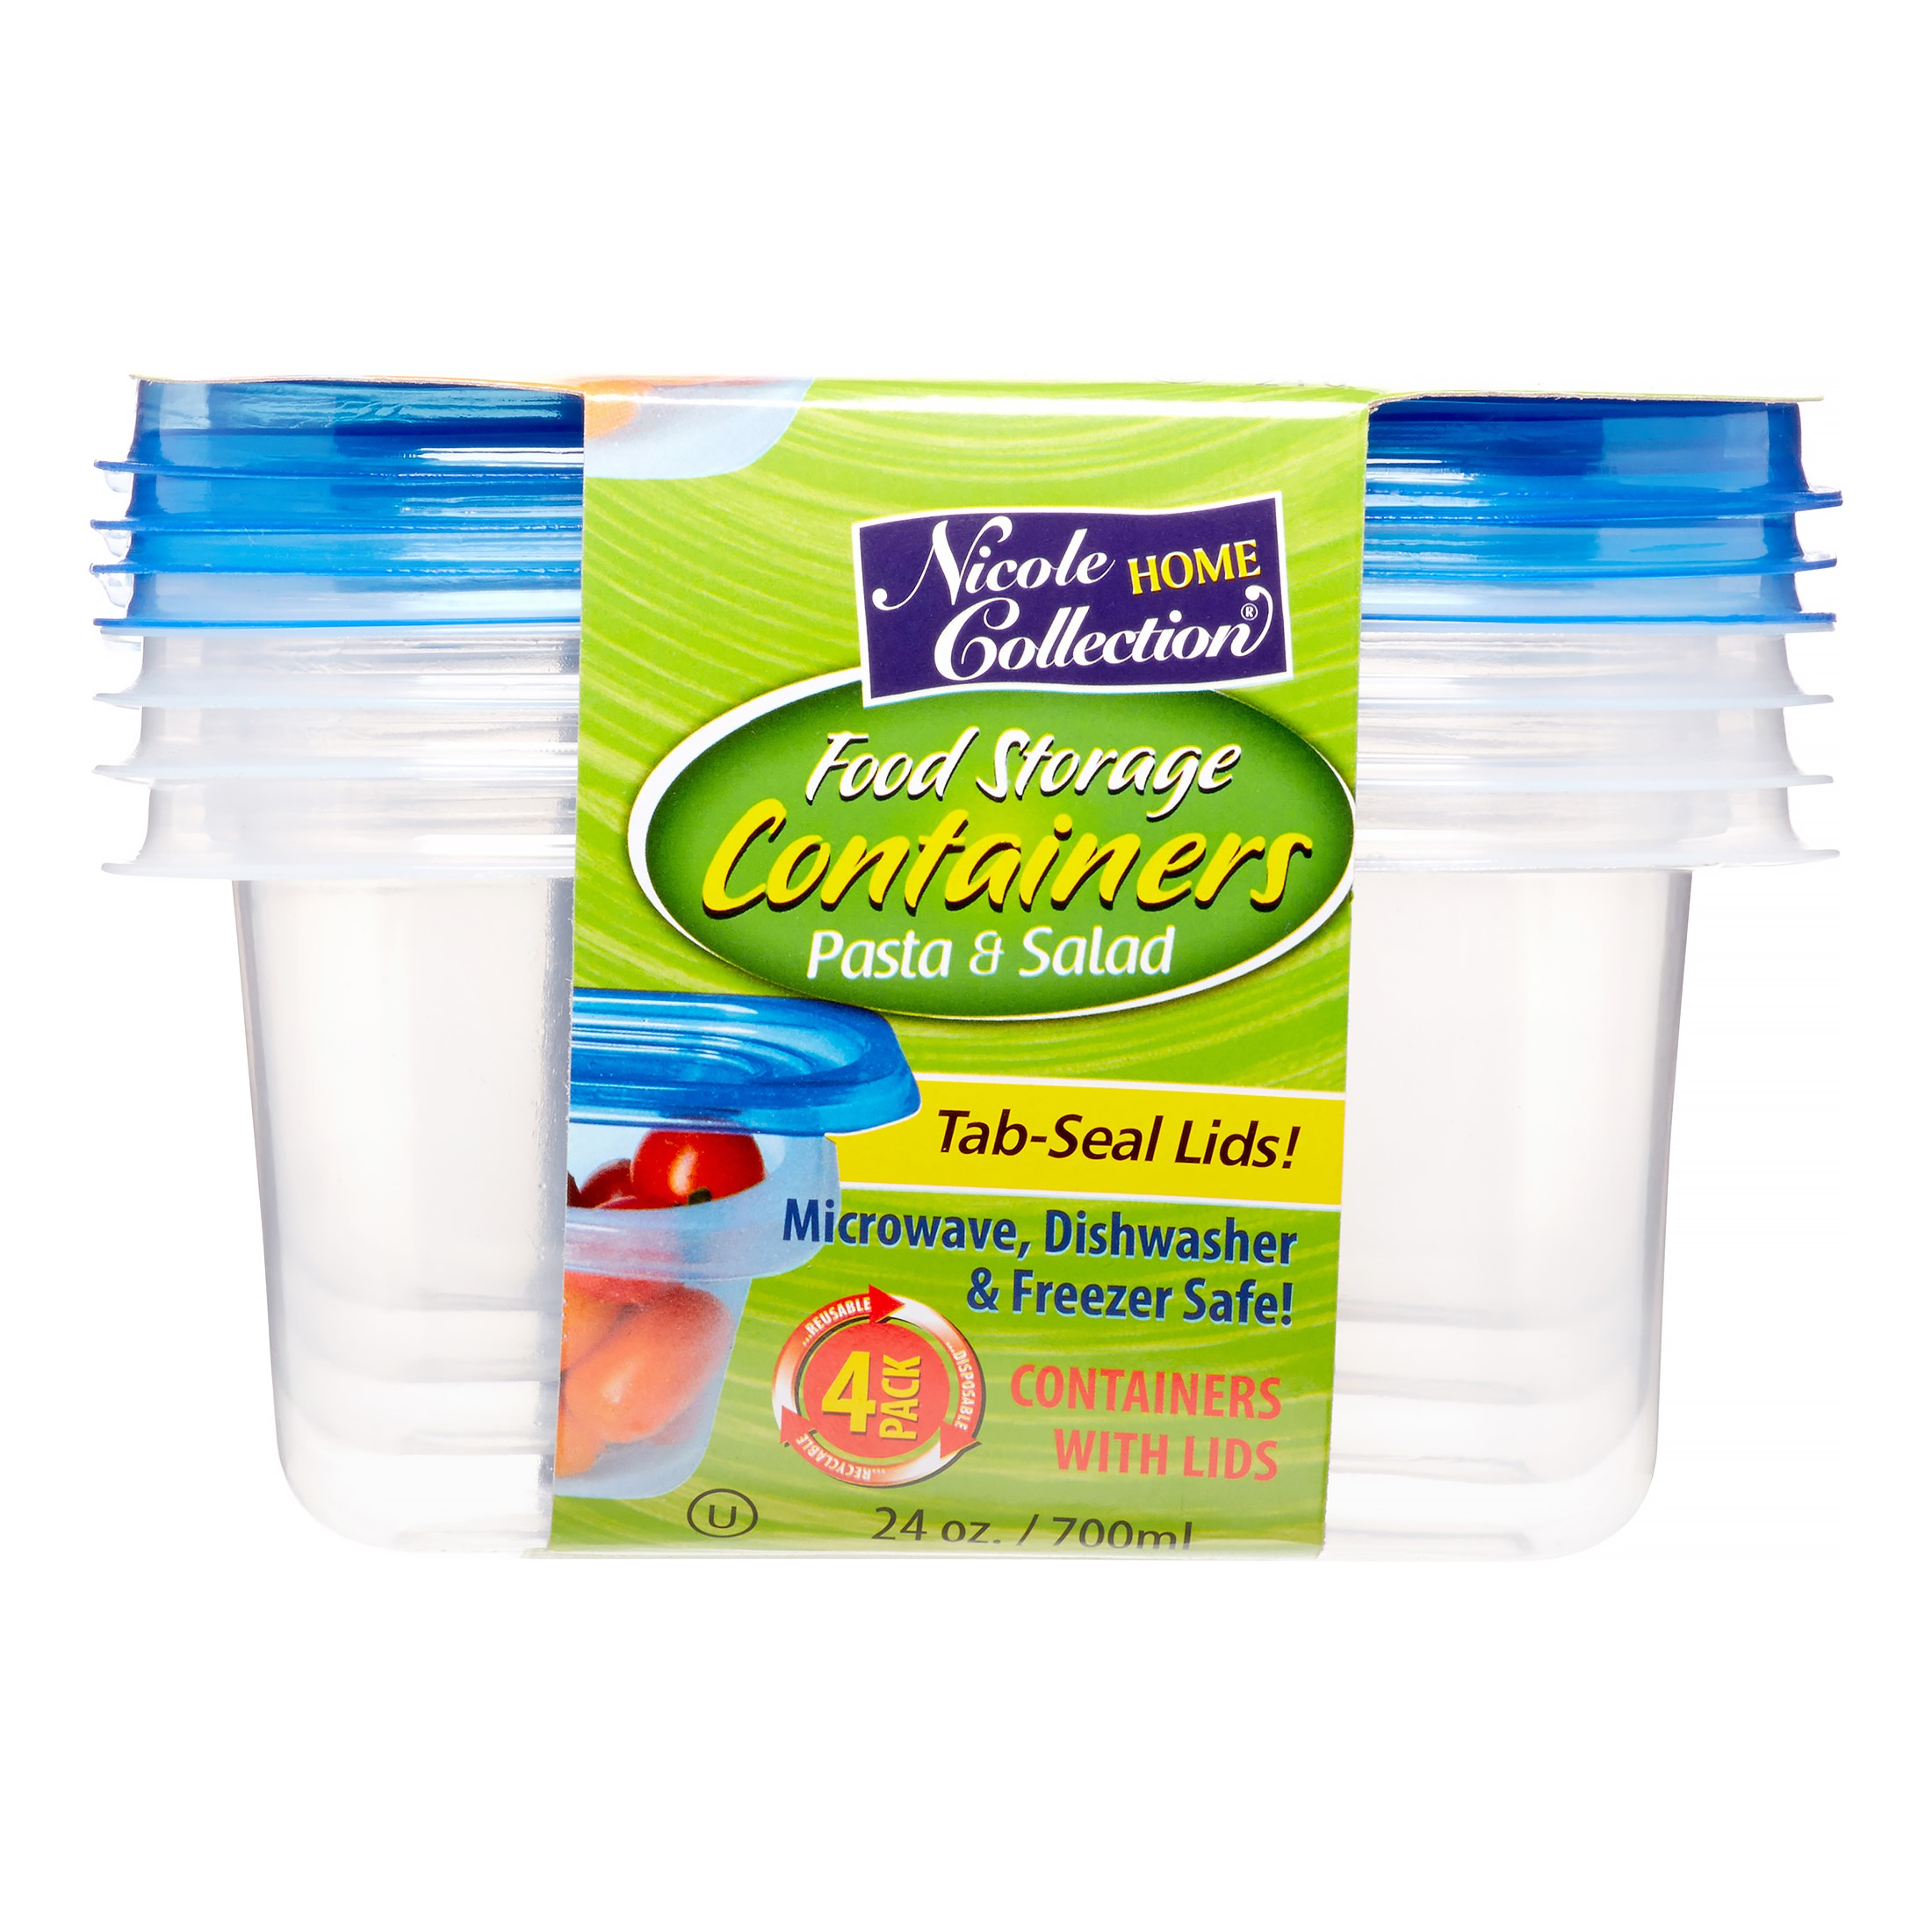 Nicole Home Collection Containers with Lid, Rectangular, 24 Oz, Clear, 4 Ct